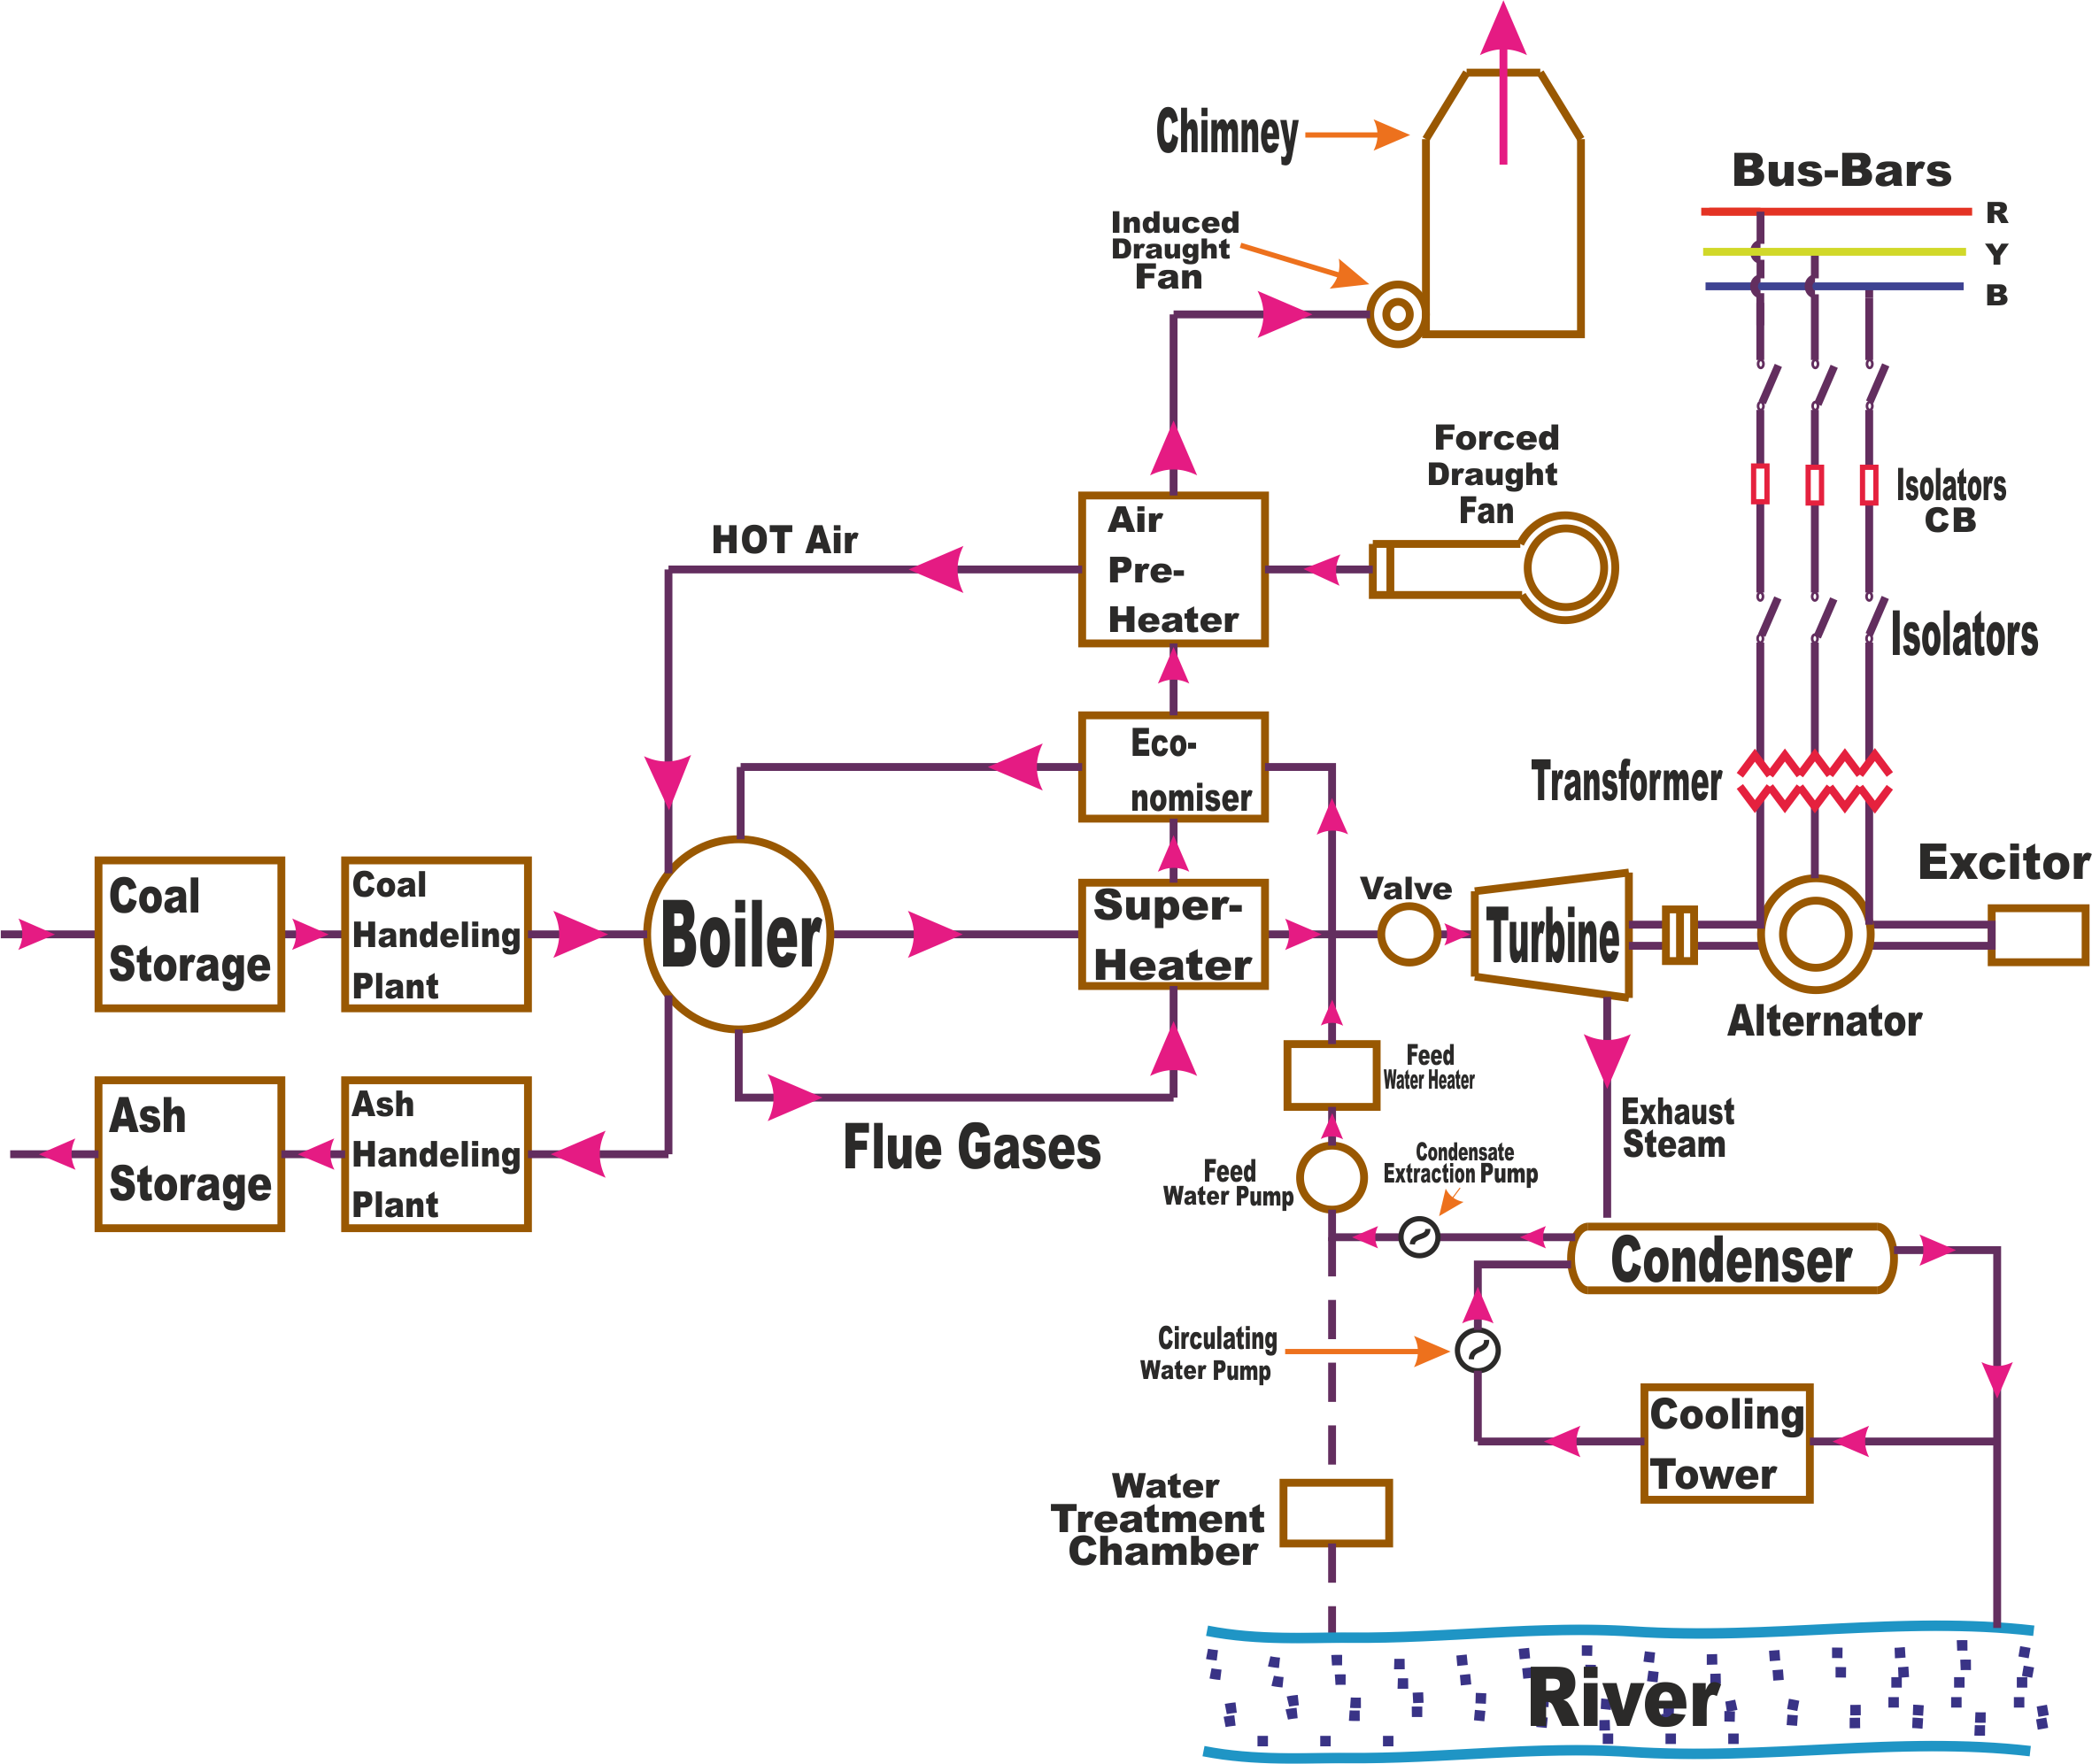 thermal power plant overview diagram thermal power plant layout and operation wiring diagram data  thermal power plant layout and